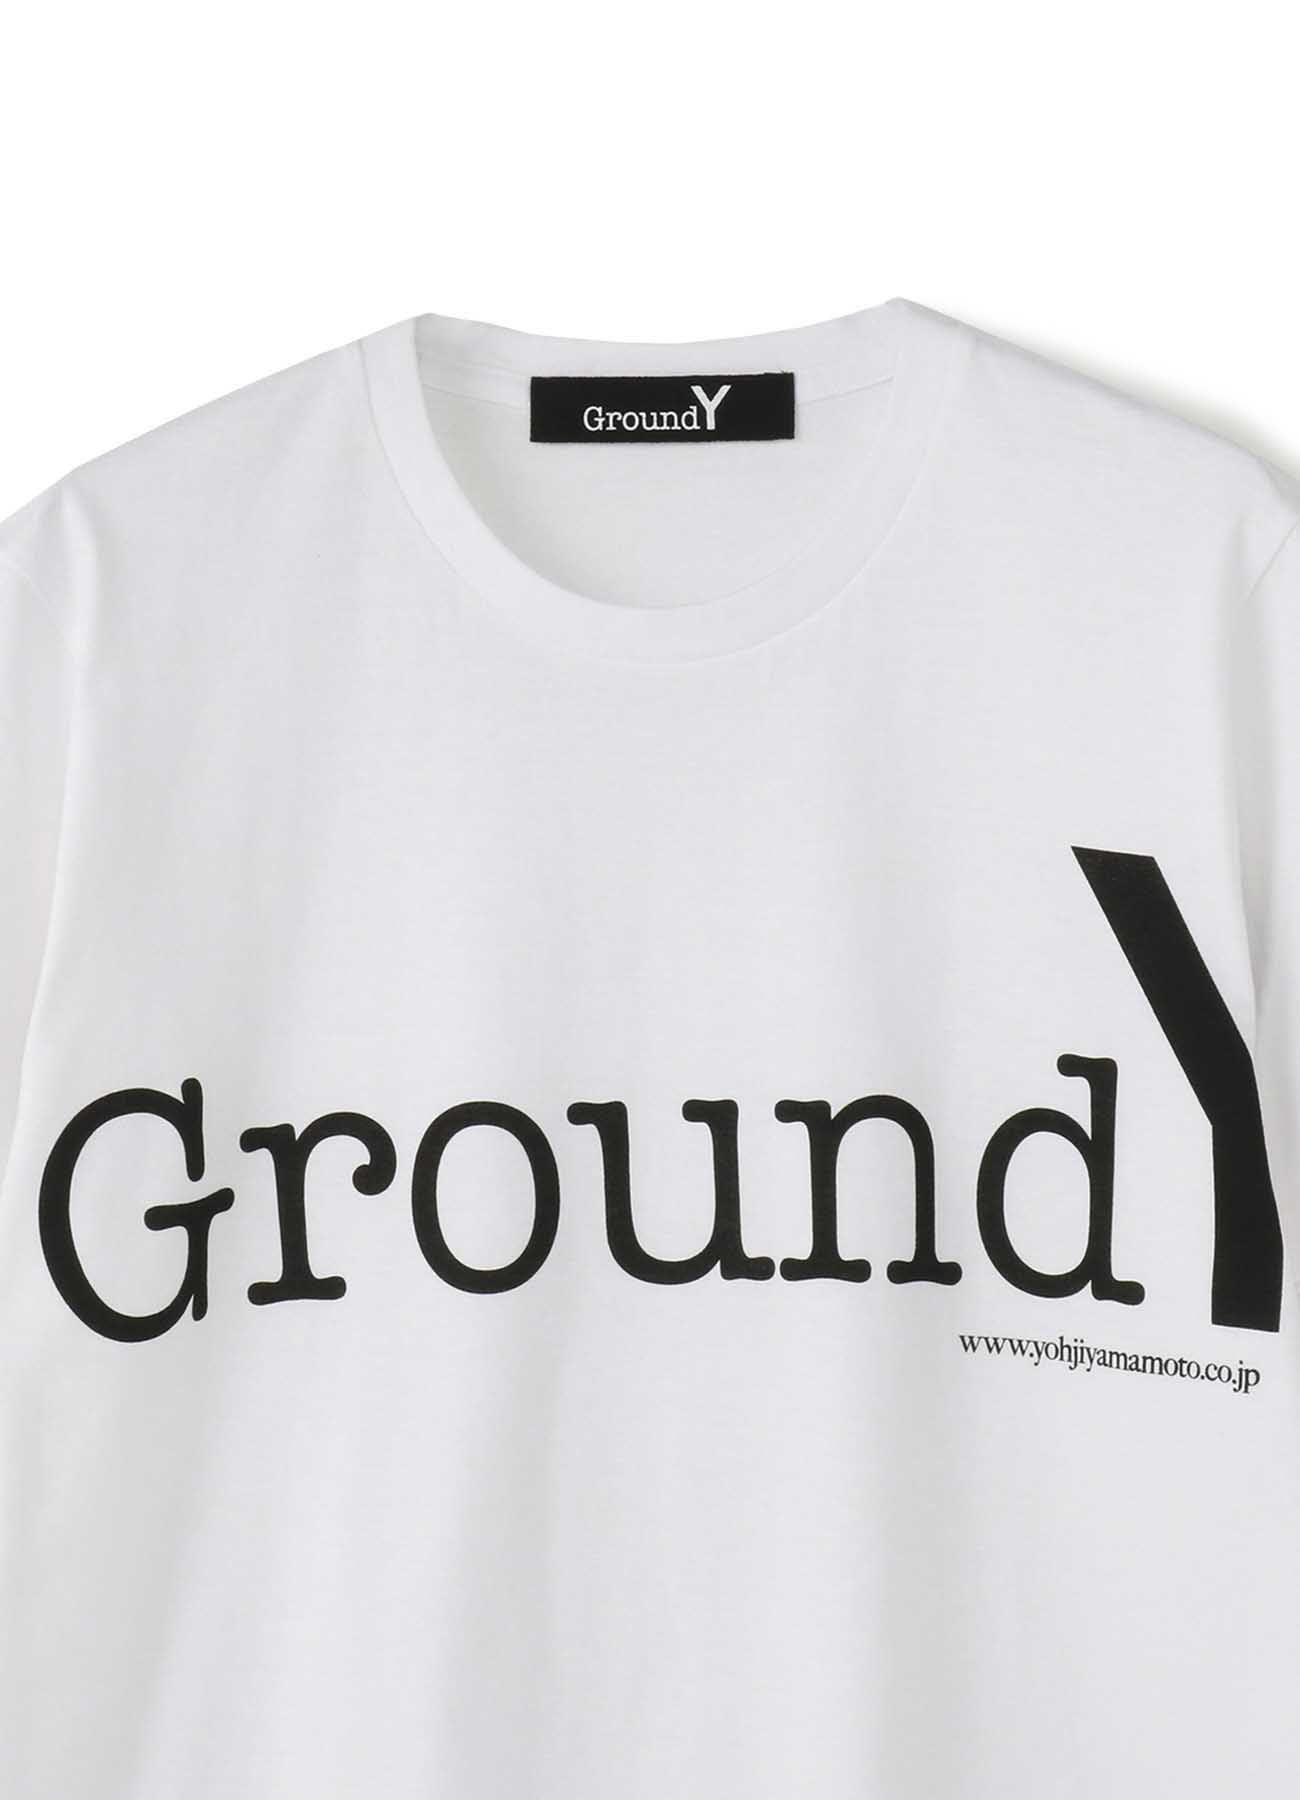 5.0oz cotton GY Logo Graphic T